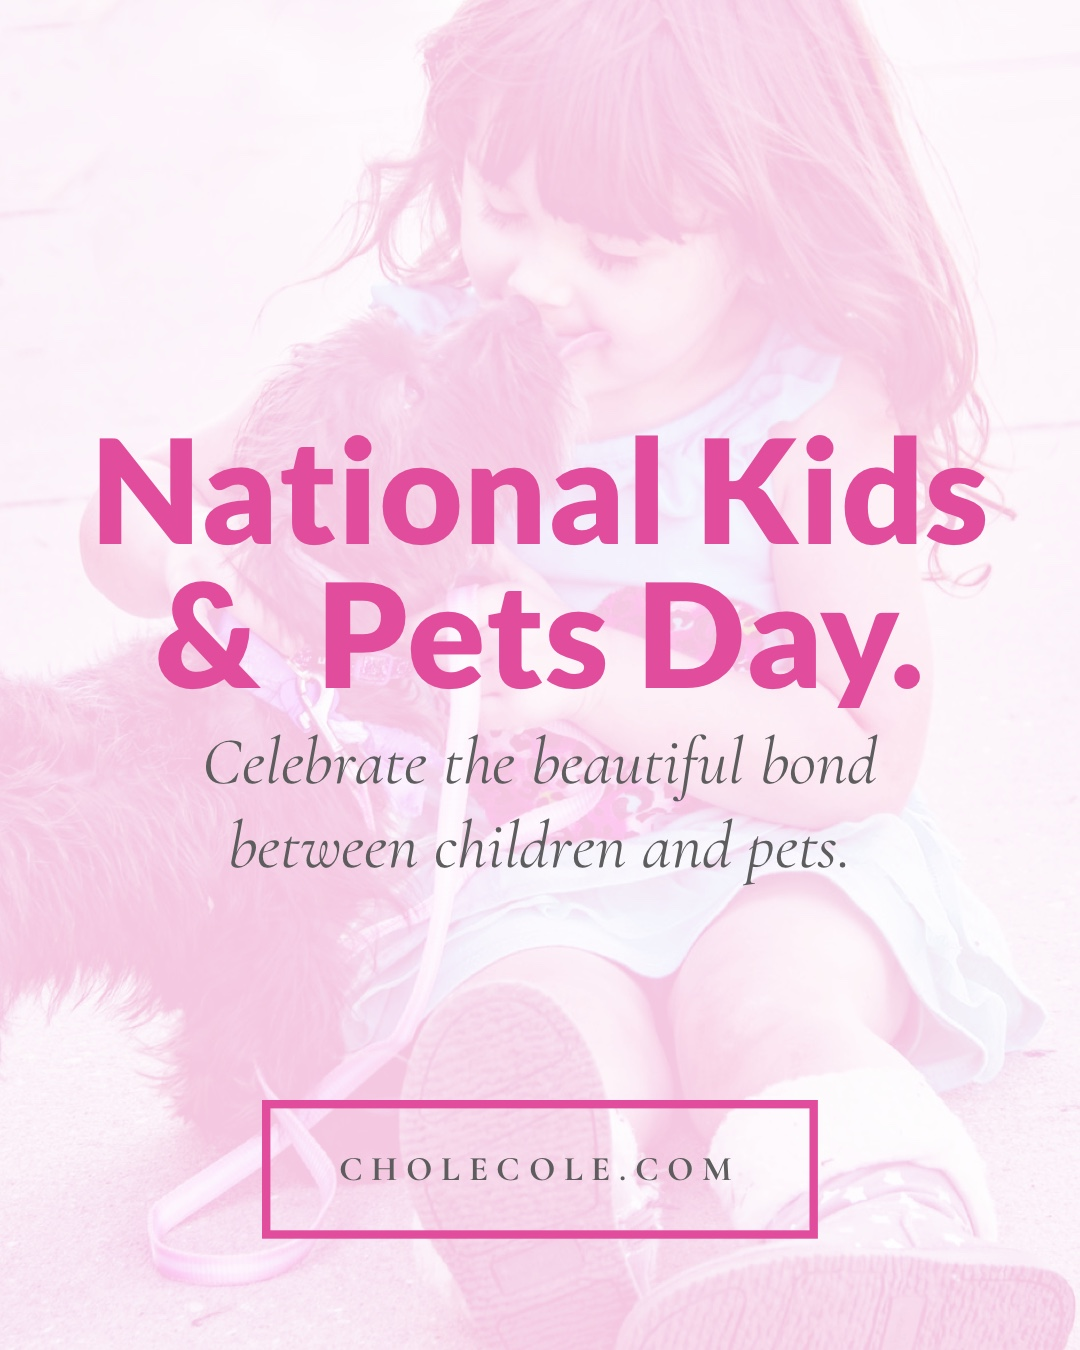 April 26th National Kids & Pets Day